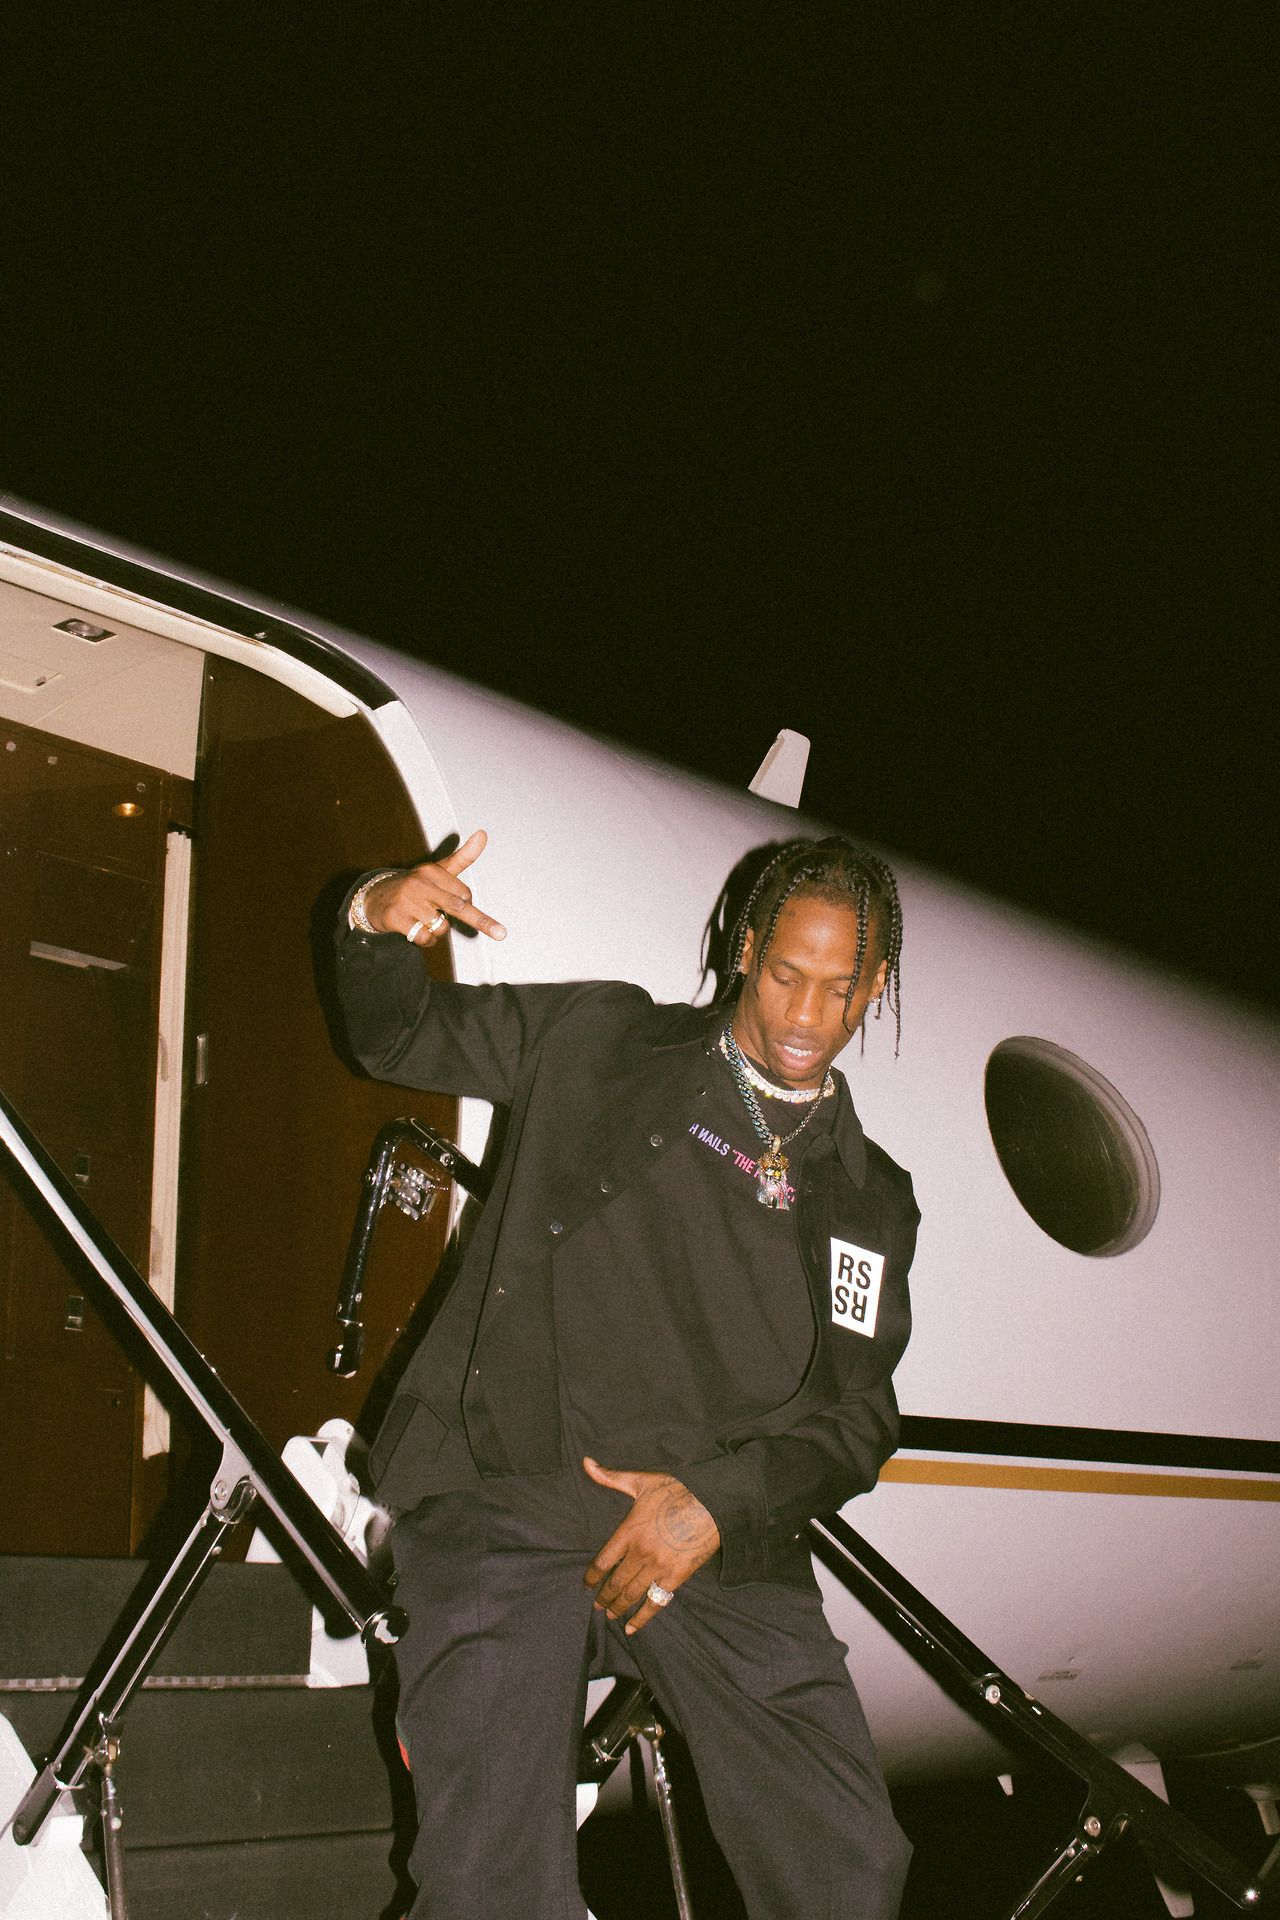 Pin by Julian on Travis cott in 2019 Travis scott